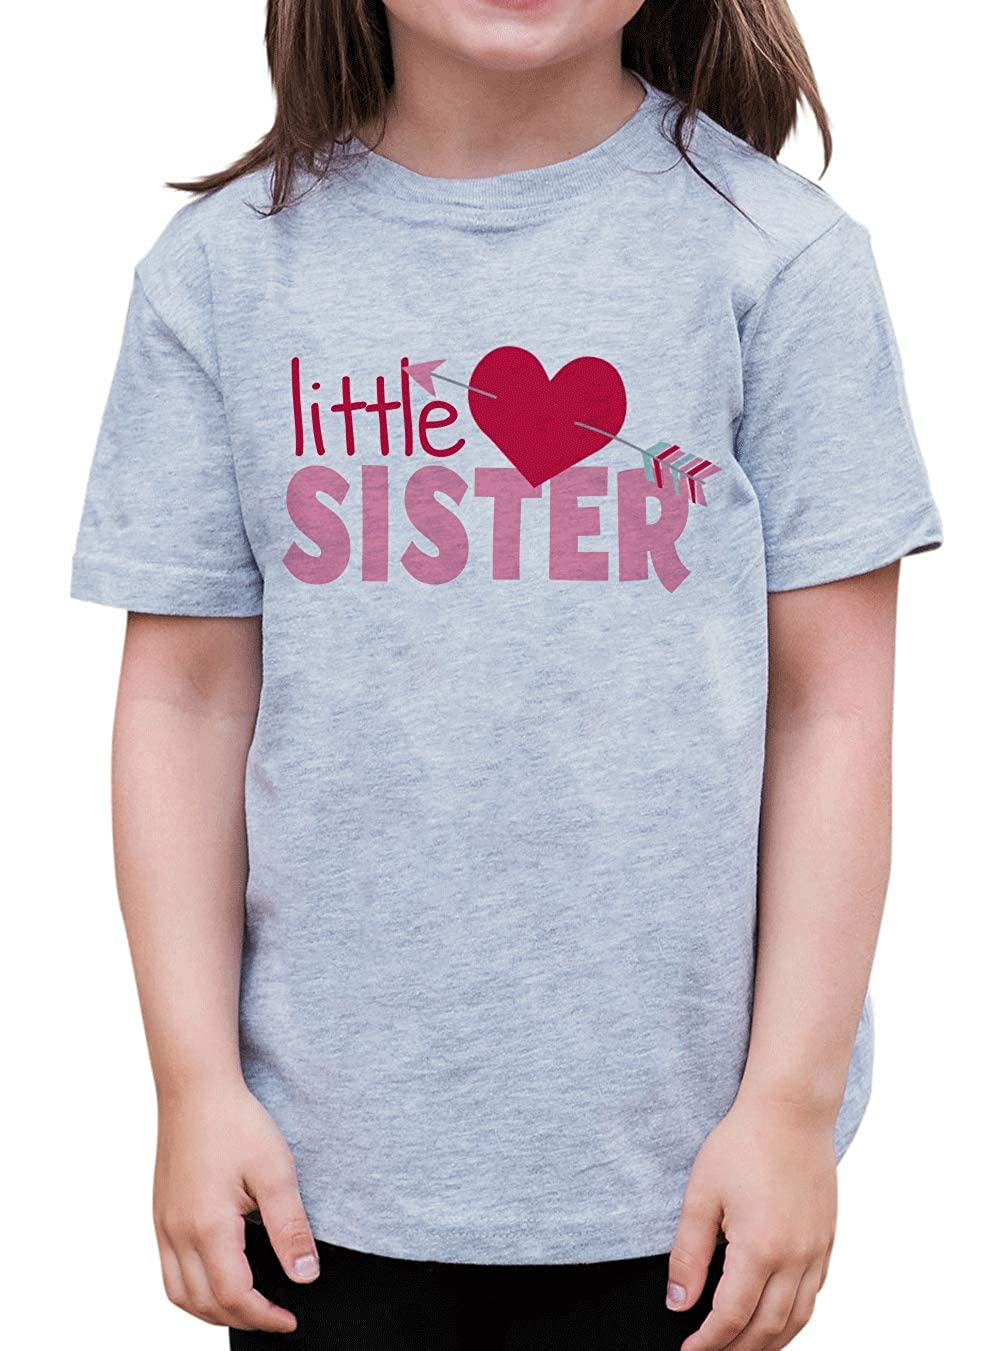 7 ate 9 Apparel Girls Little Sister Happy Valentines Day T-Shirt